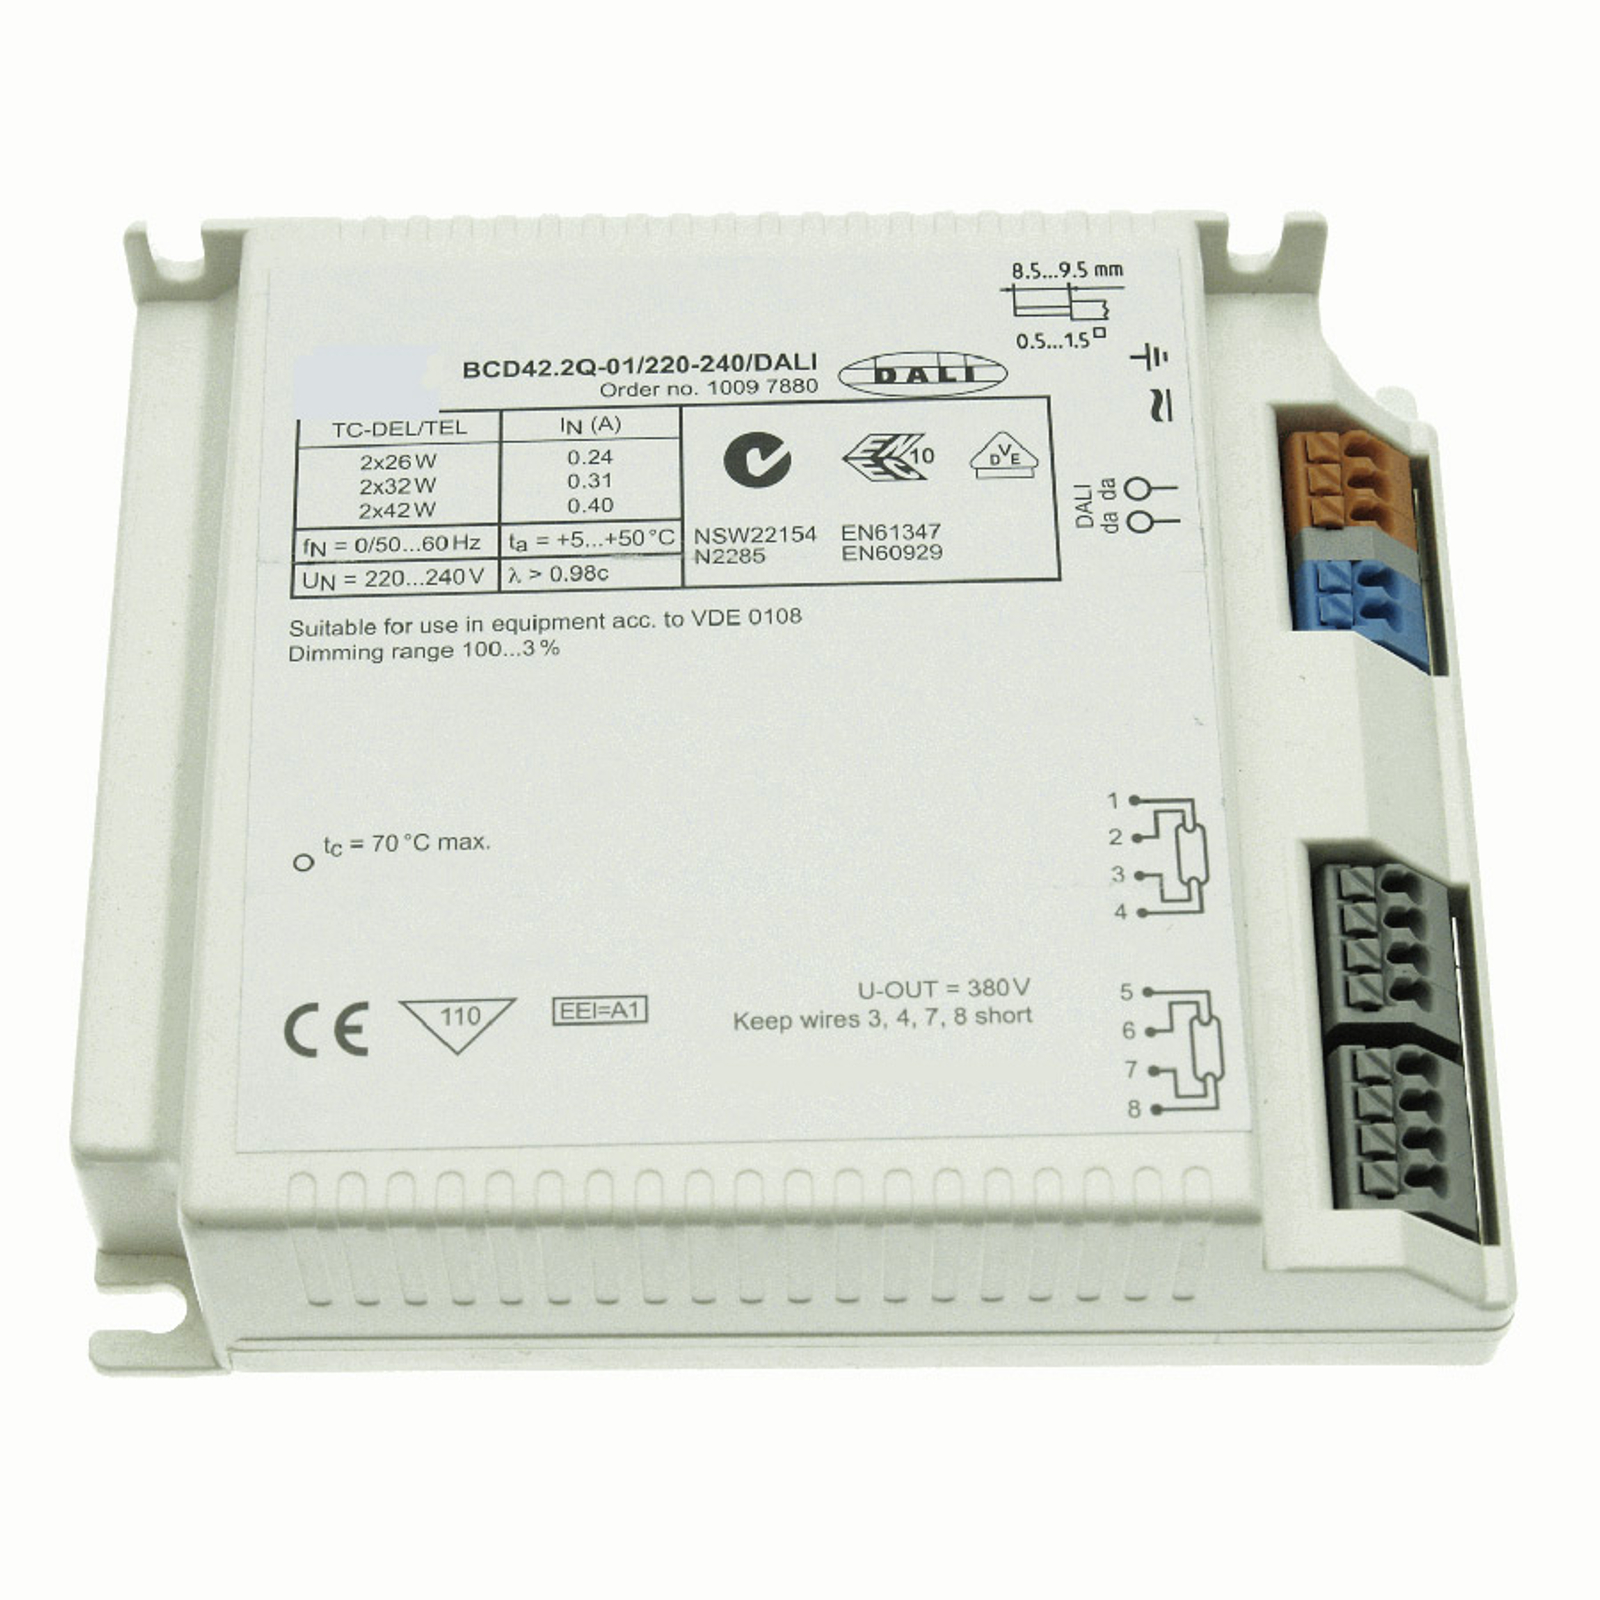 BE 2 x 26-42W BCD42.2Q-01/220-240/dimmable DALI